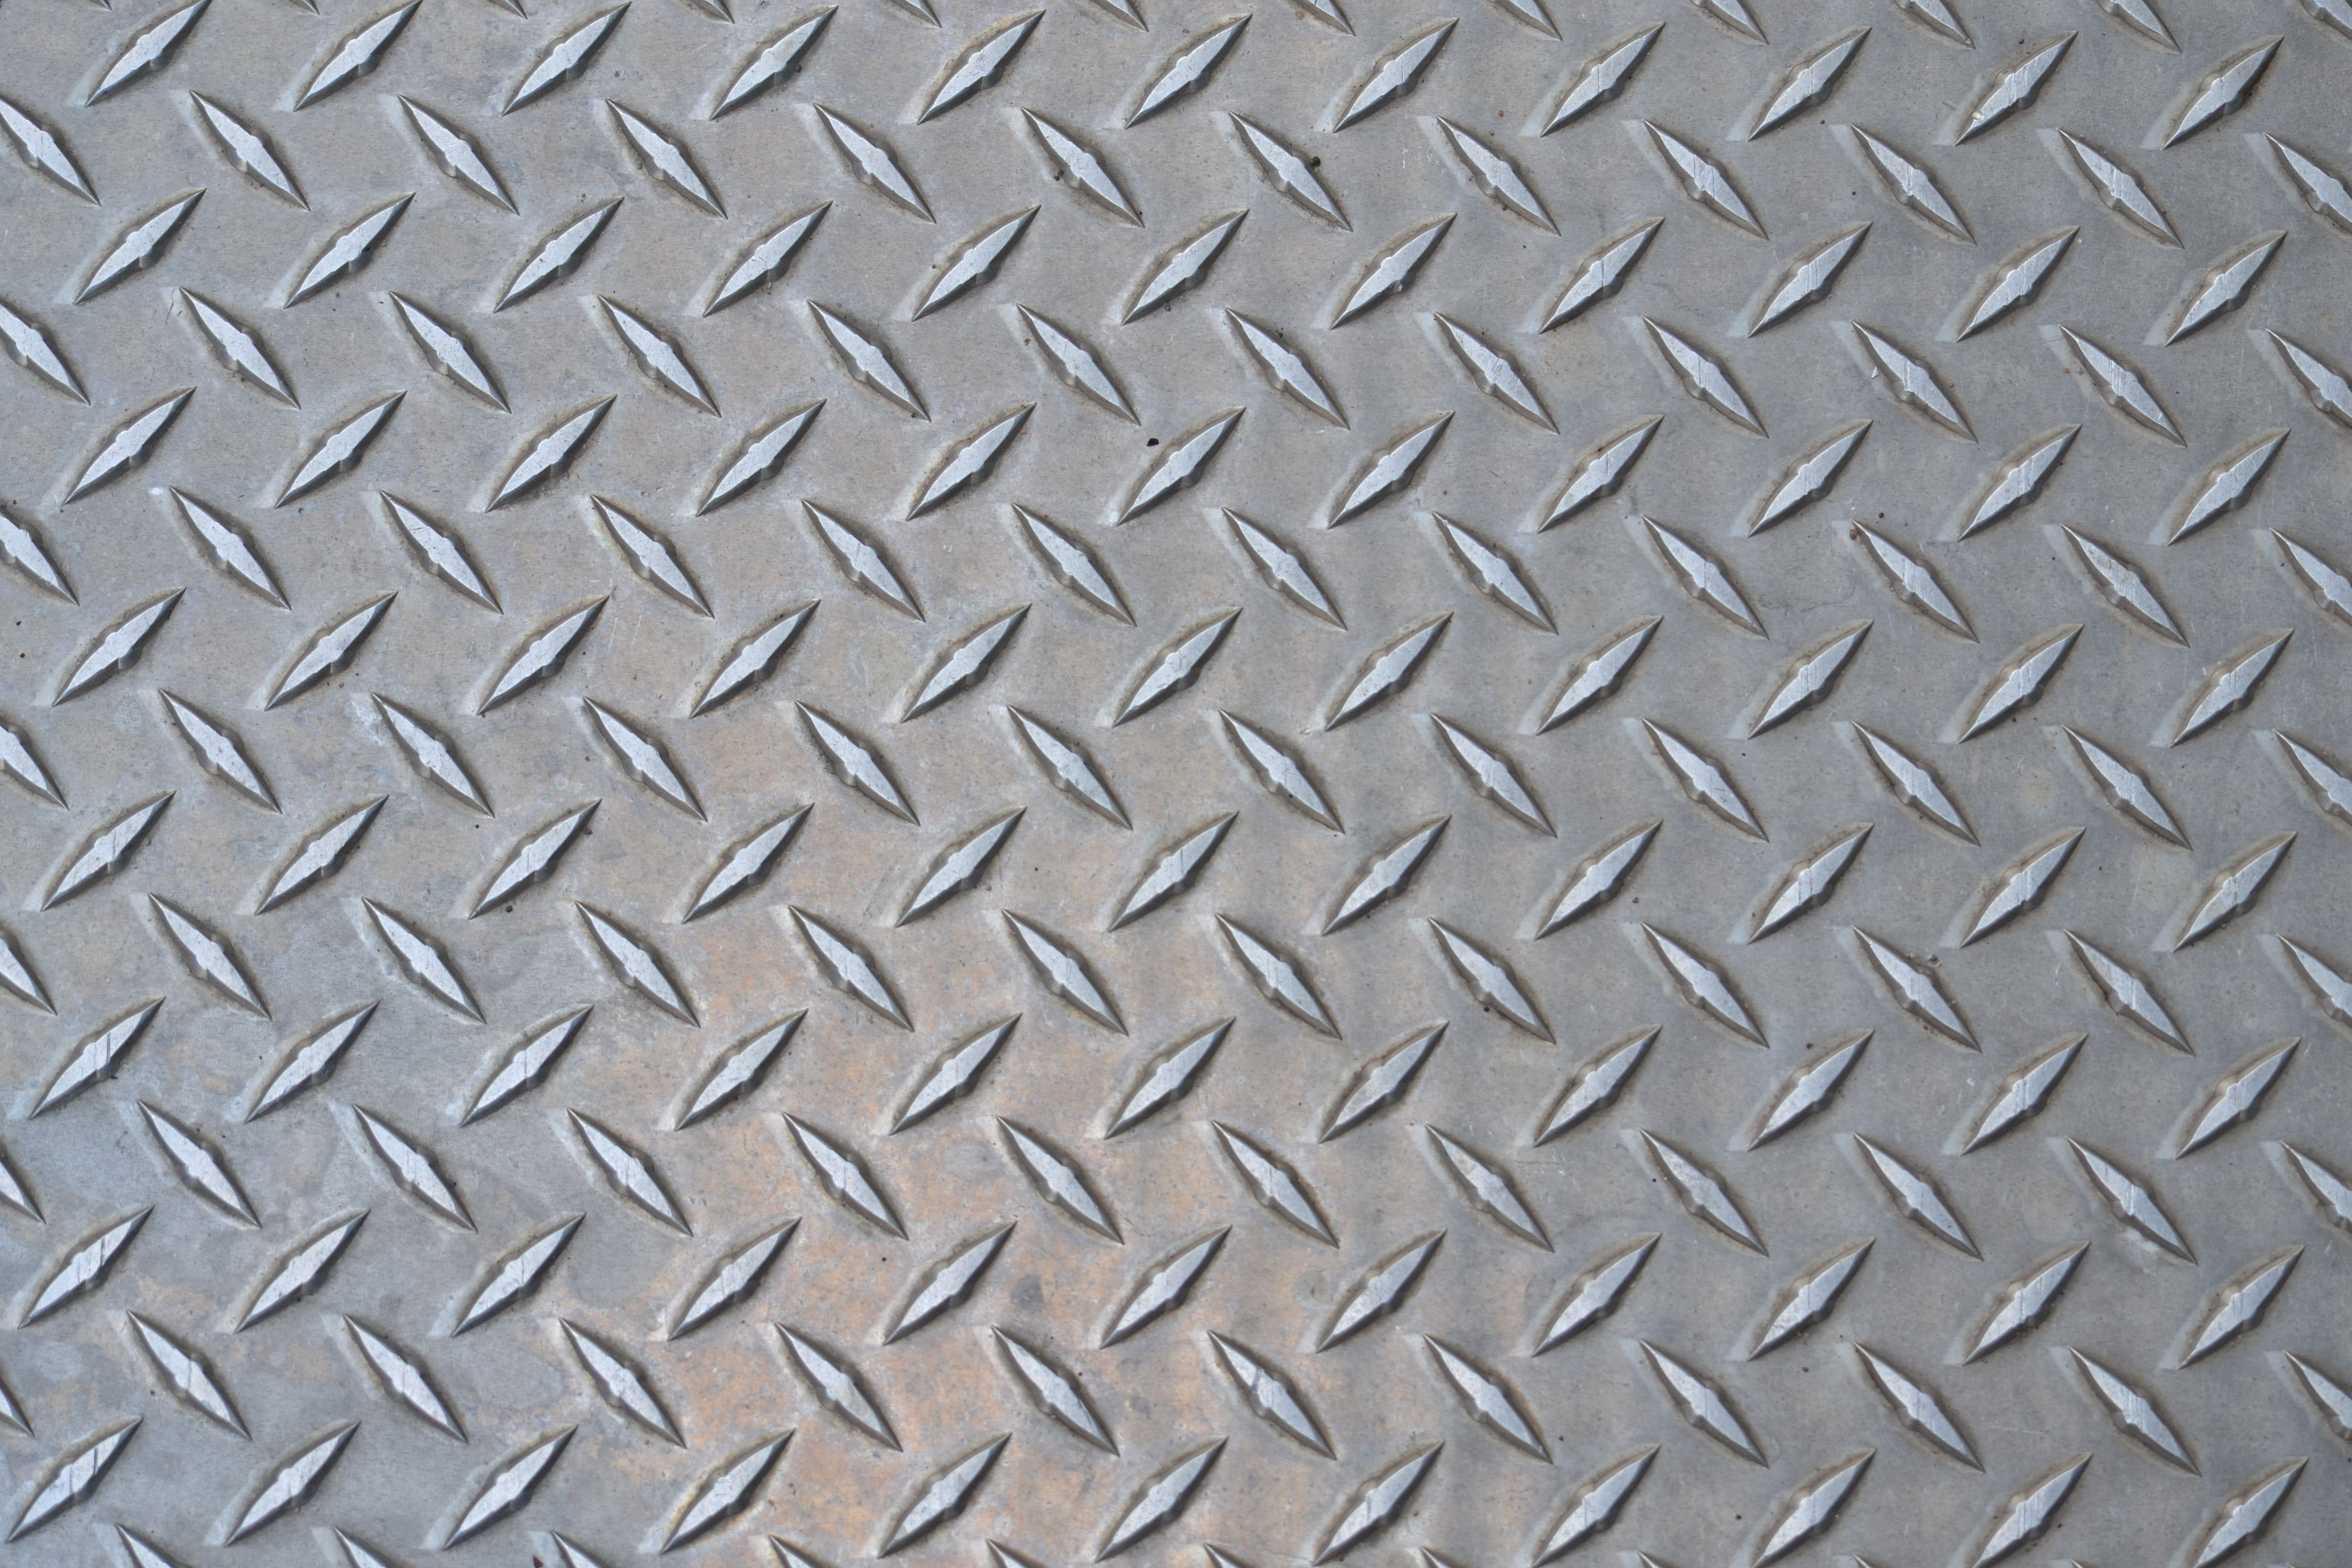 Diamond Plate Iphone Wallpapers Top Free Diamond Plate Iphone